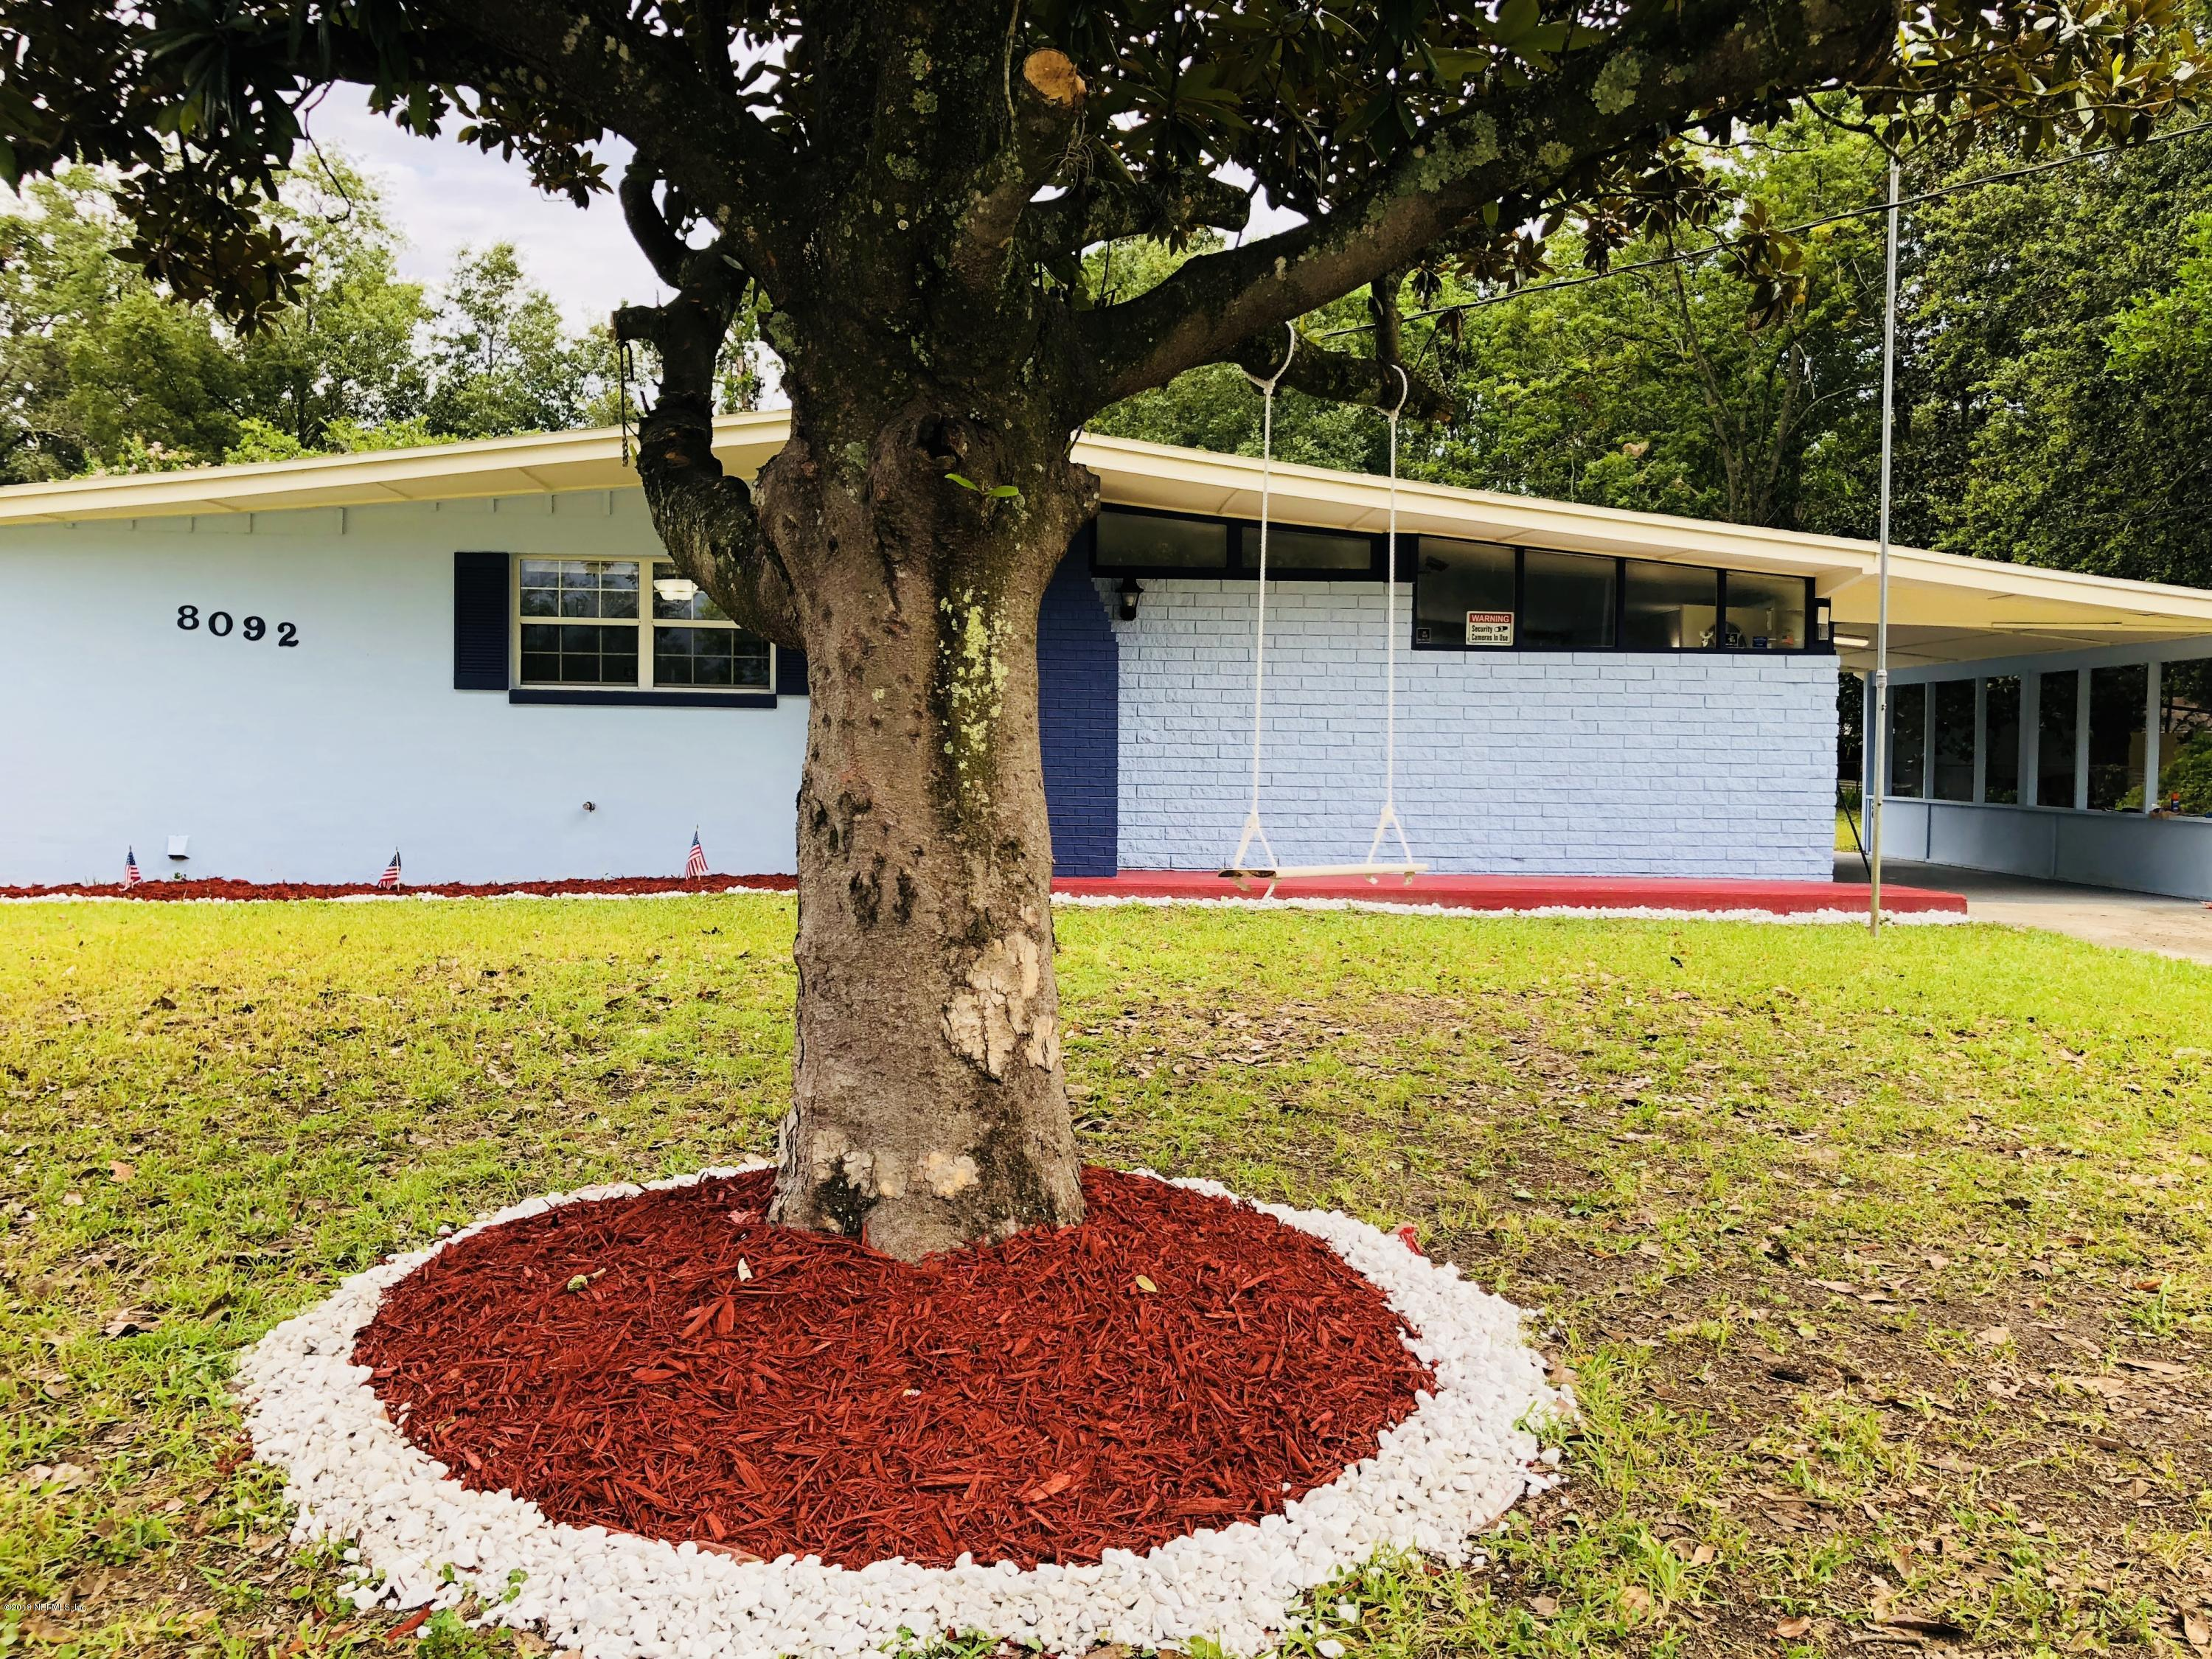 8092 PATOU, JACKSONVILLE, FLORIDA 32210, 3 Bedrooms Bedrooms, ,2 BathroomsBathrooms,Residential - single family,For sale,PATOU,945126